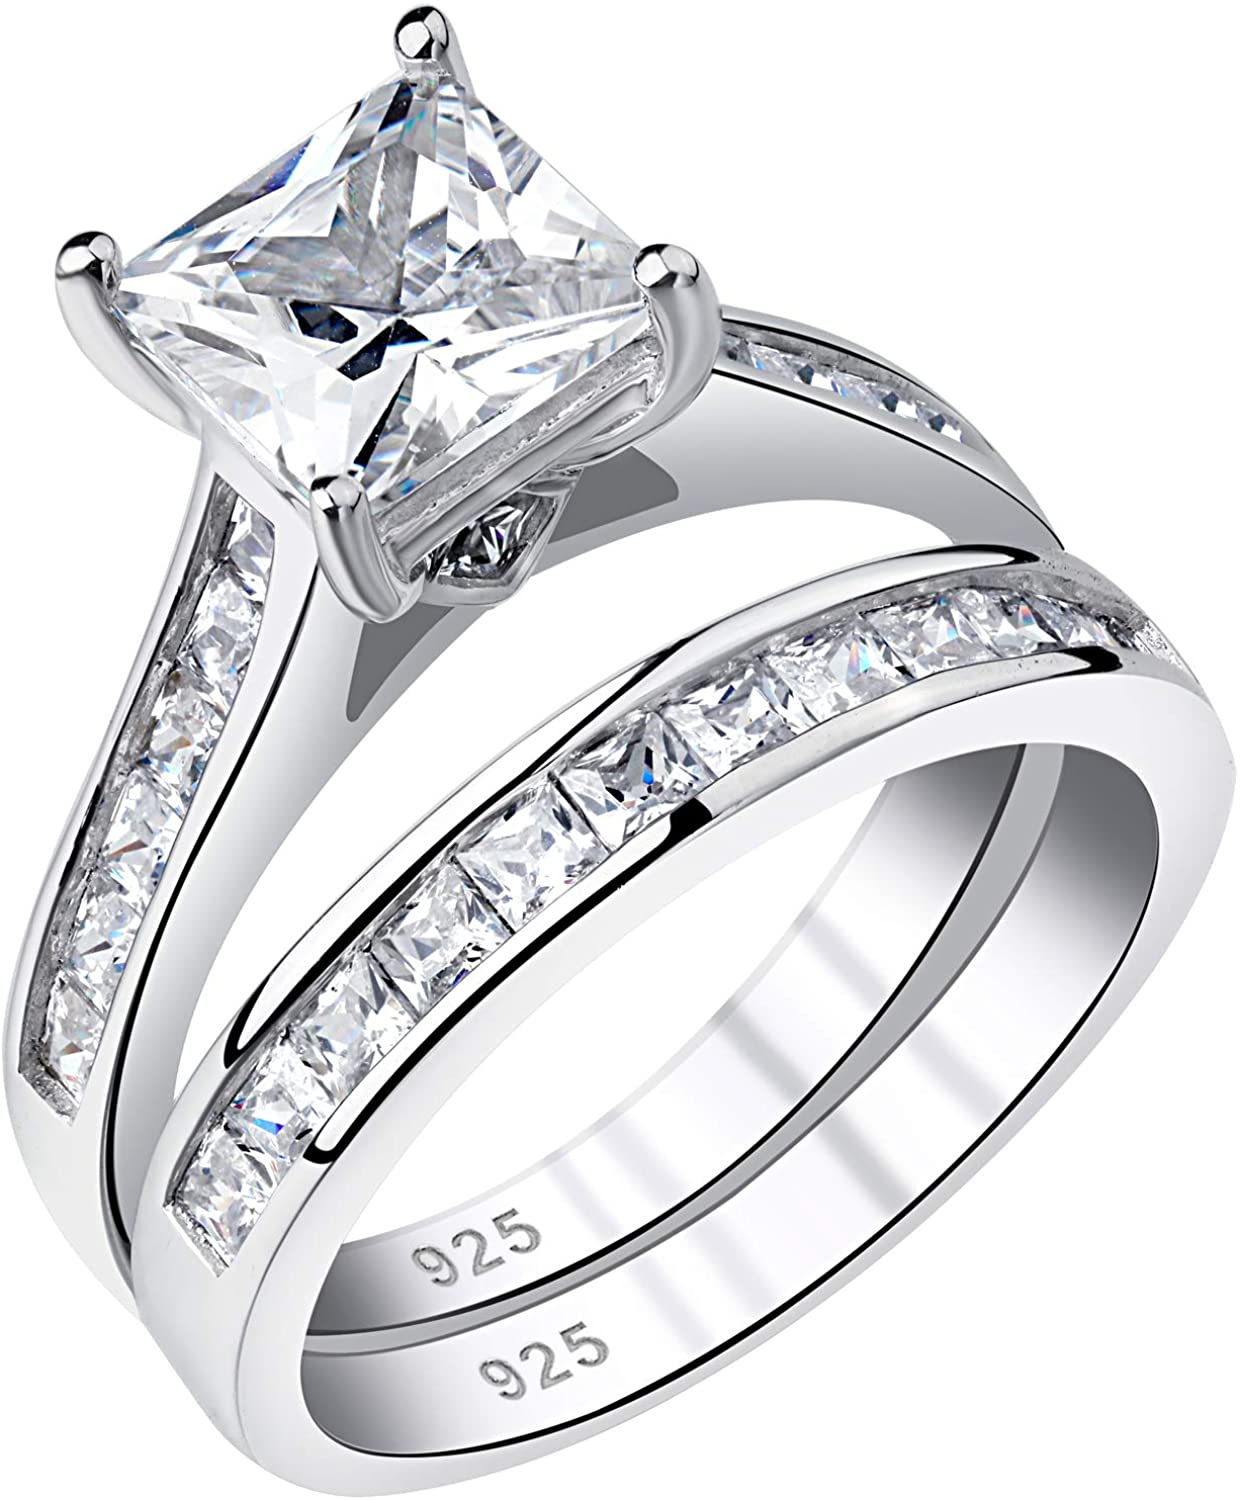 Newshe Wedding Rings for Women Engagement Ring Sets Princess 925 Sterling Silver Cz 1.8Ct Size 5-10